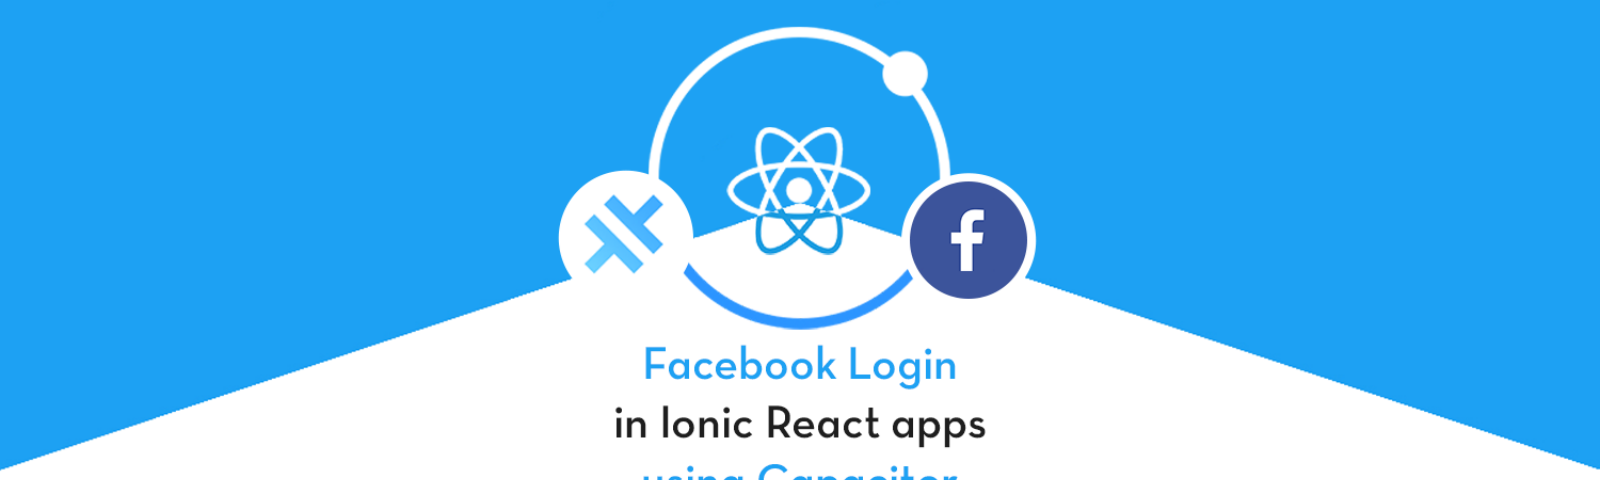 Facebook login in Ionic React Capacitor apps